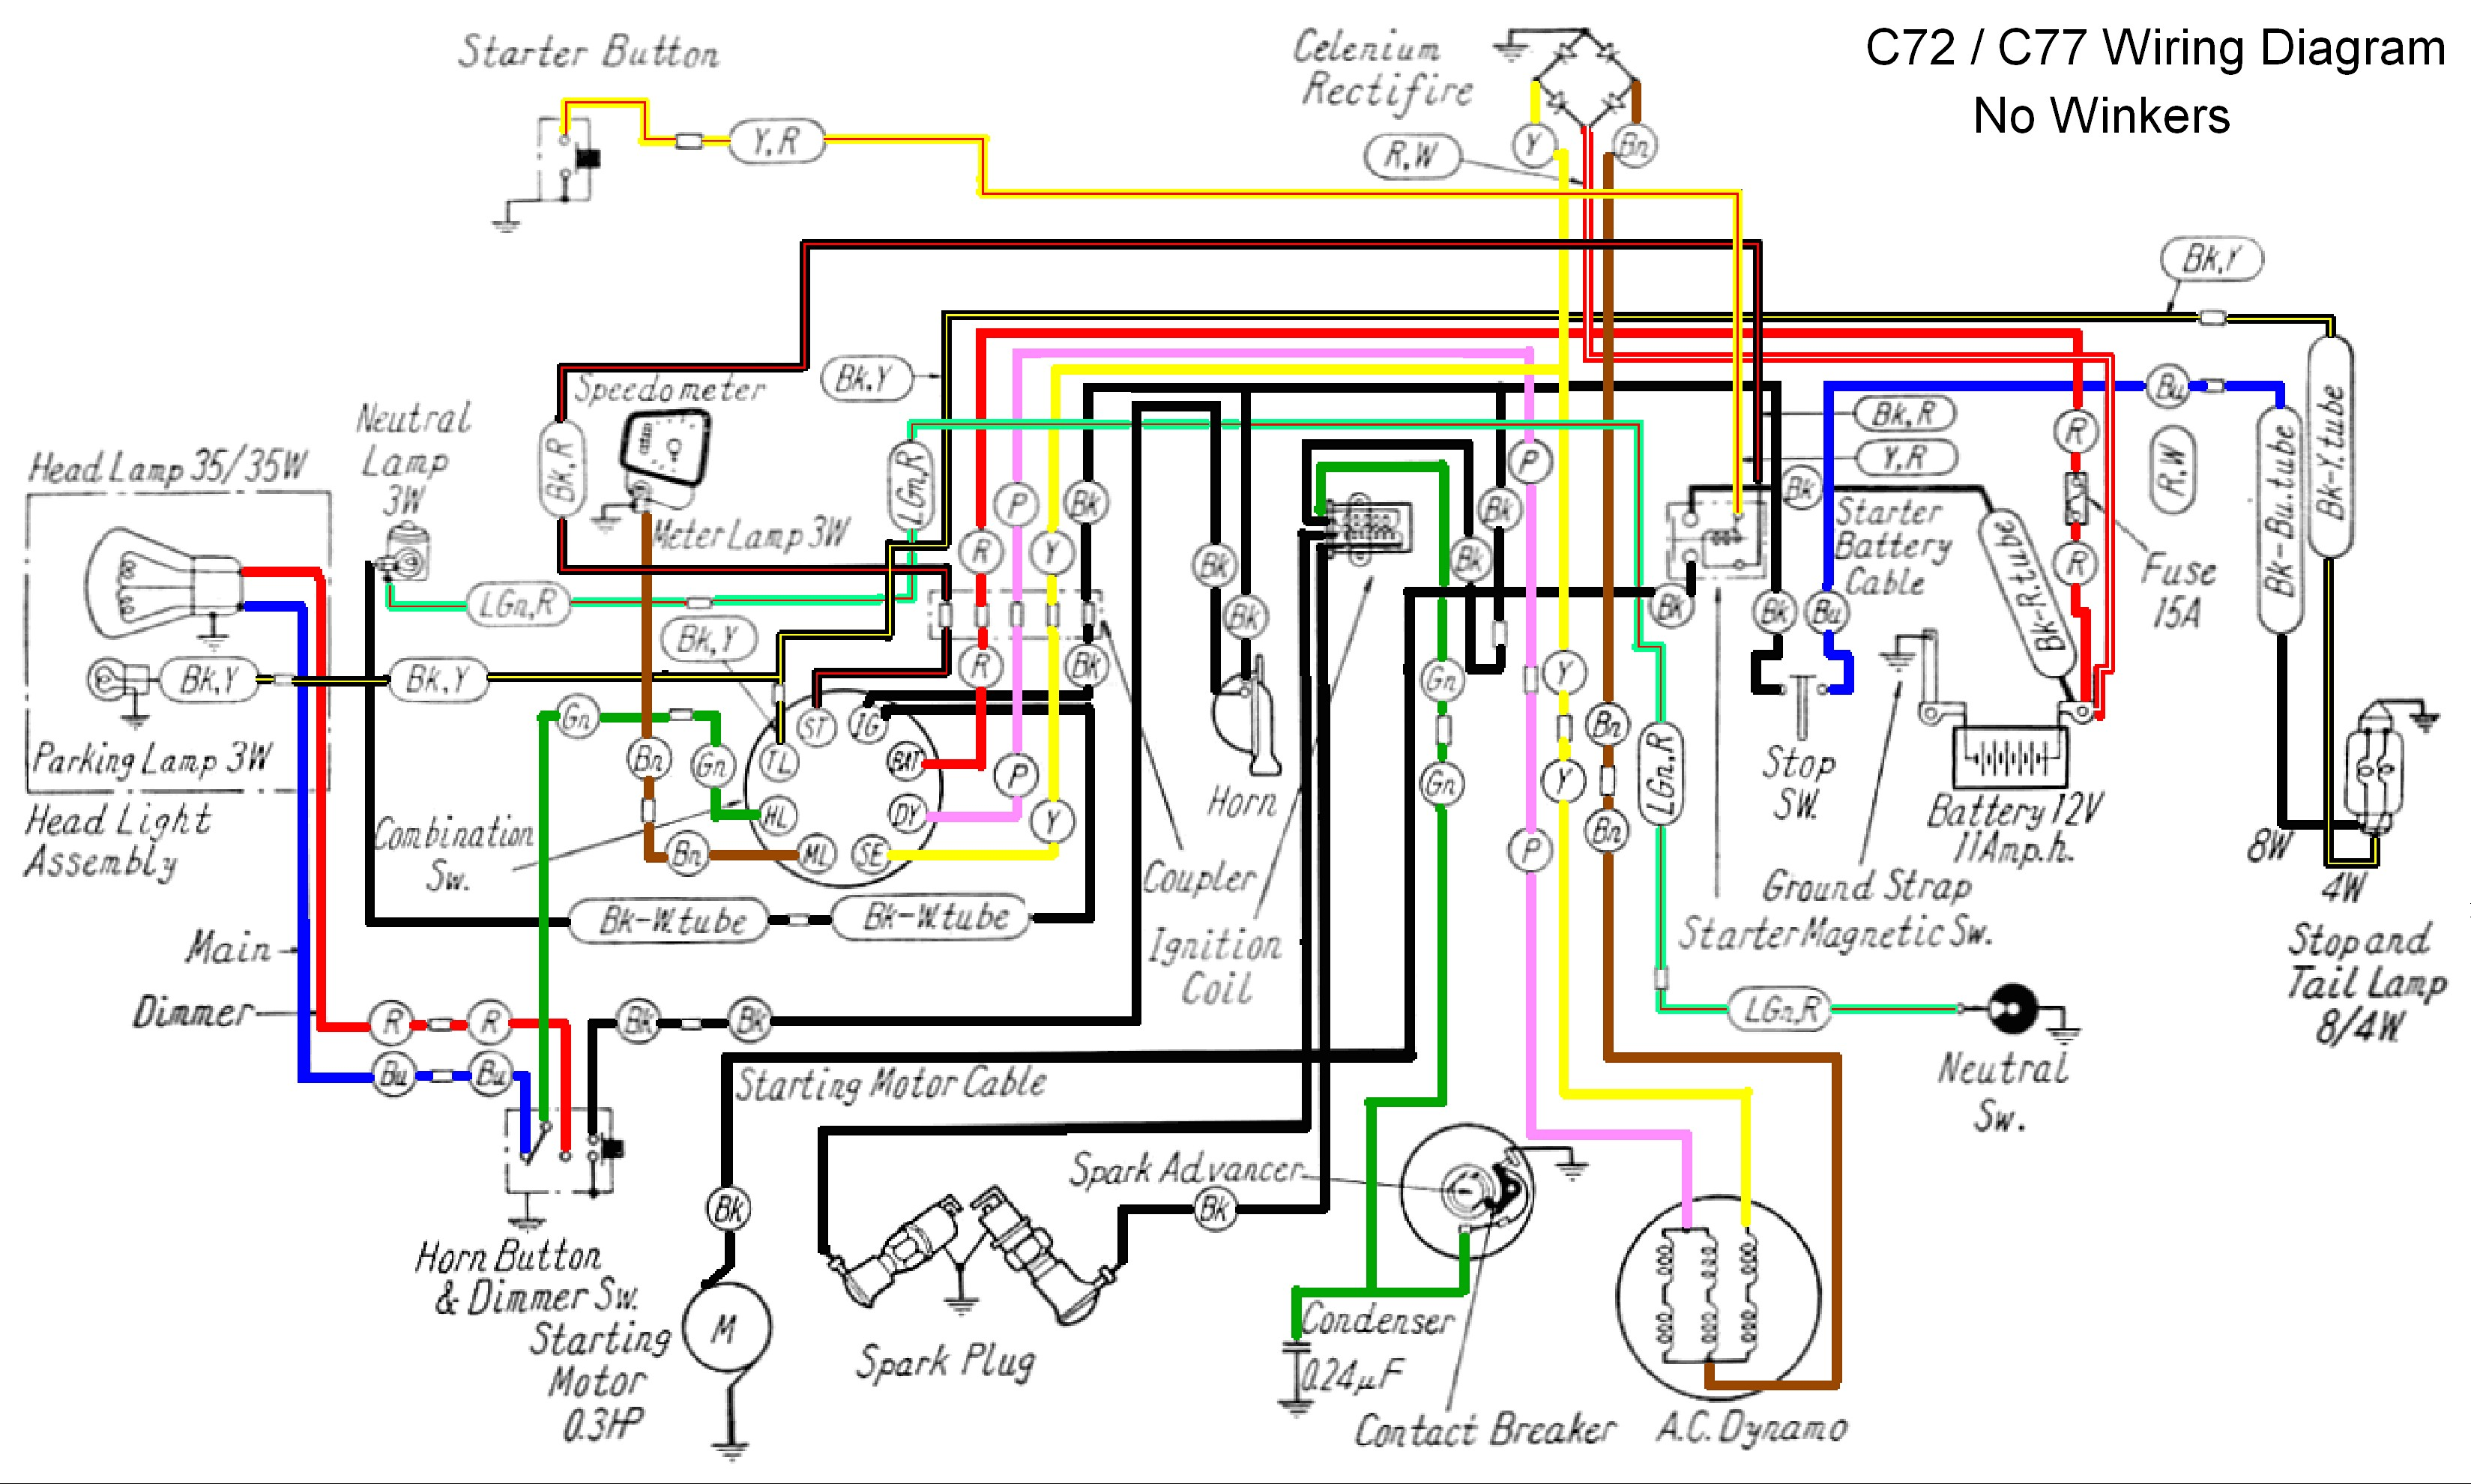 2015 Harley Dyna Wiring Diagram Great Installation Of 1995 Fxd Todays Rh 16 10 1813weddingbarn Com